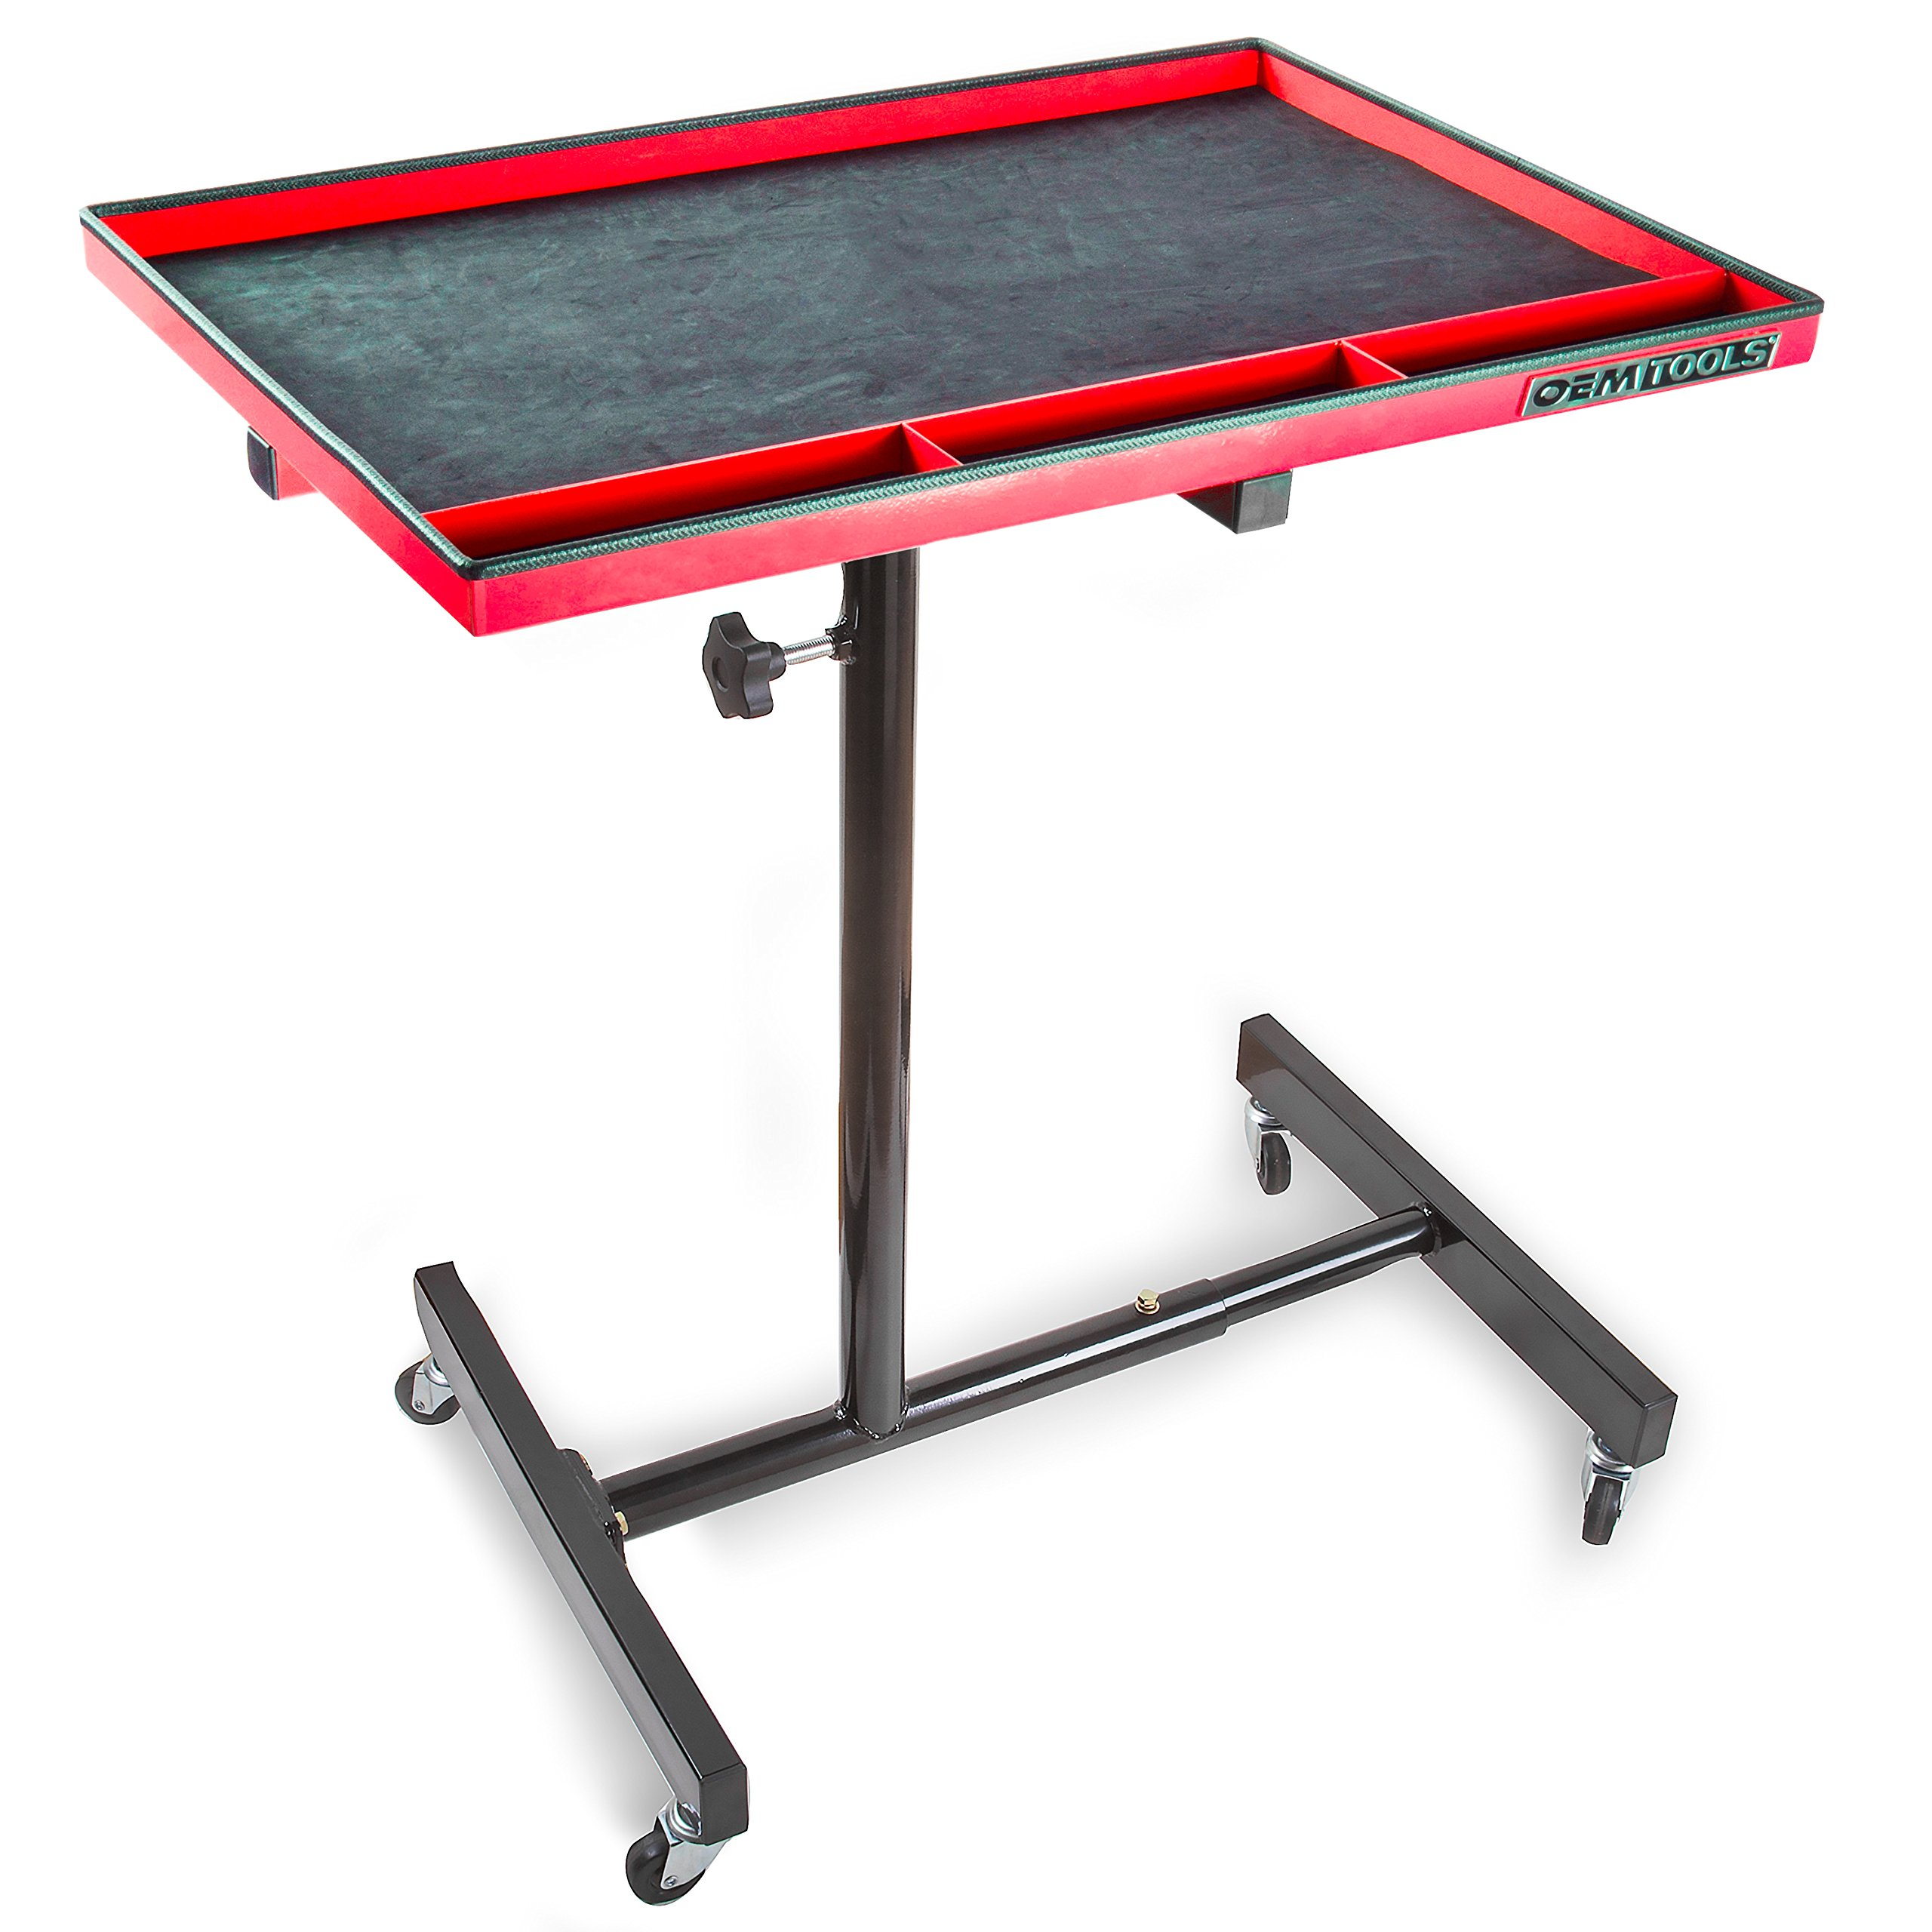 OEMTOOLS 24935 OEMTOOLS 24935 Red and Black 29'' Portable Tear Down Tray by OEMTOOLS